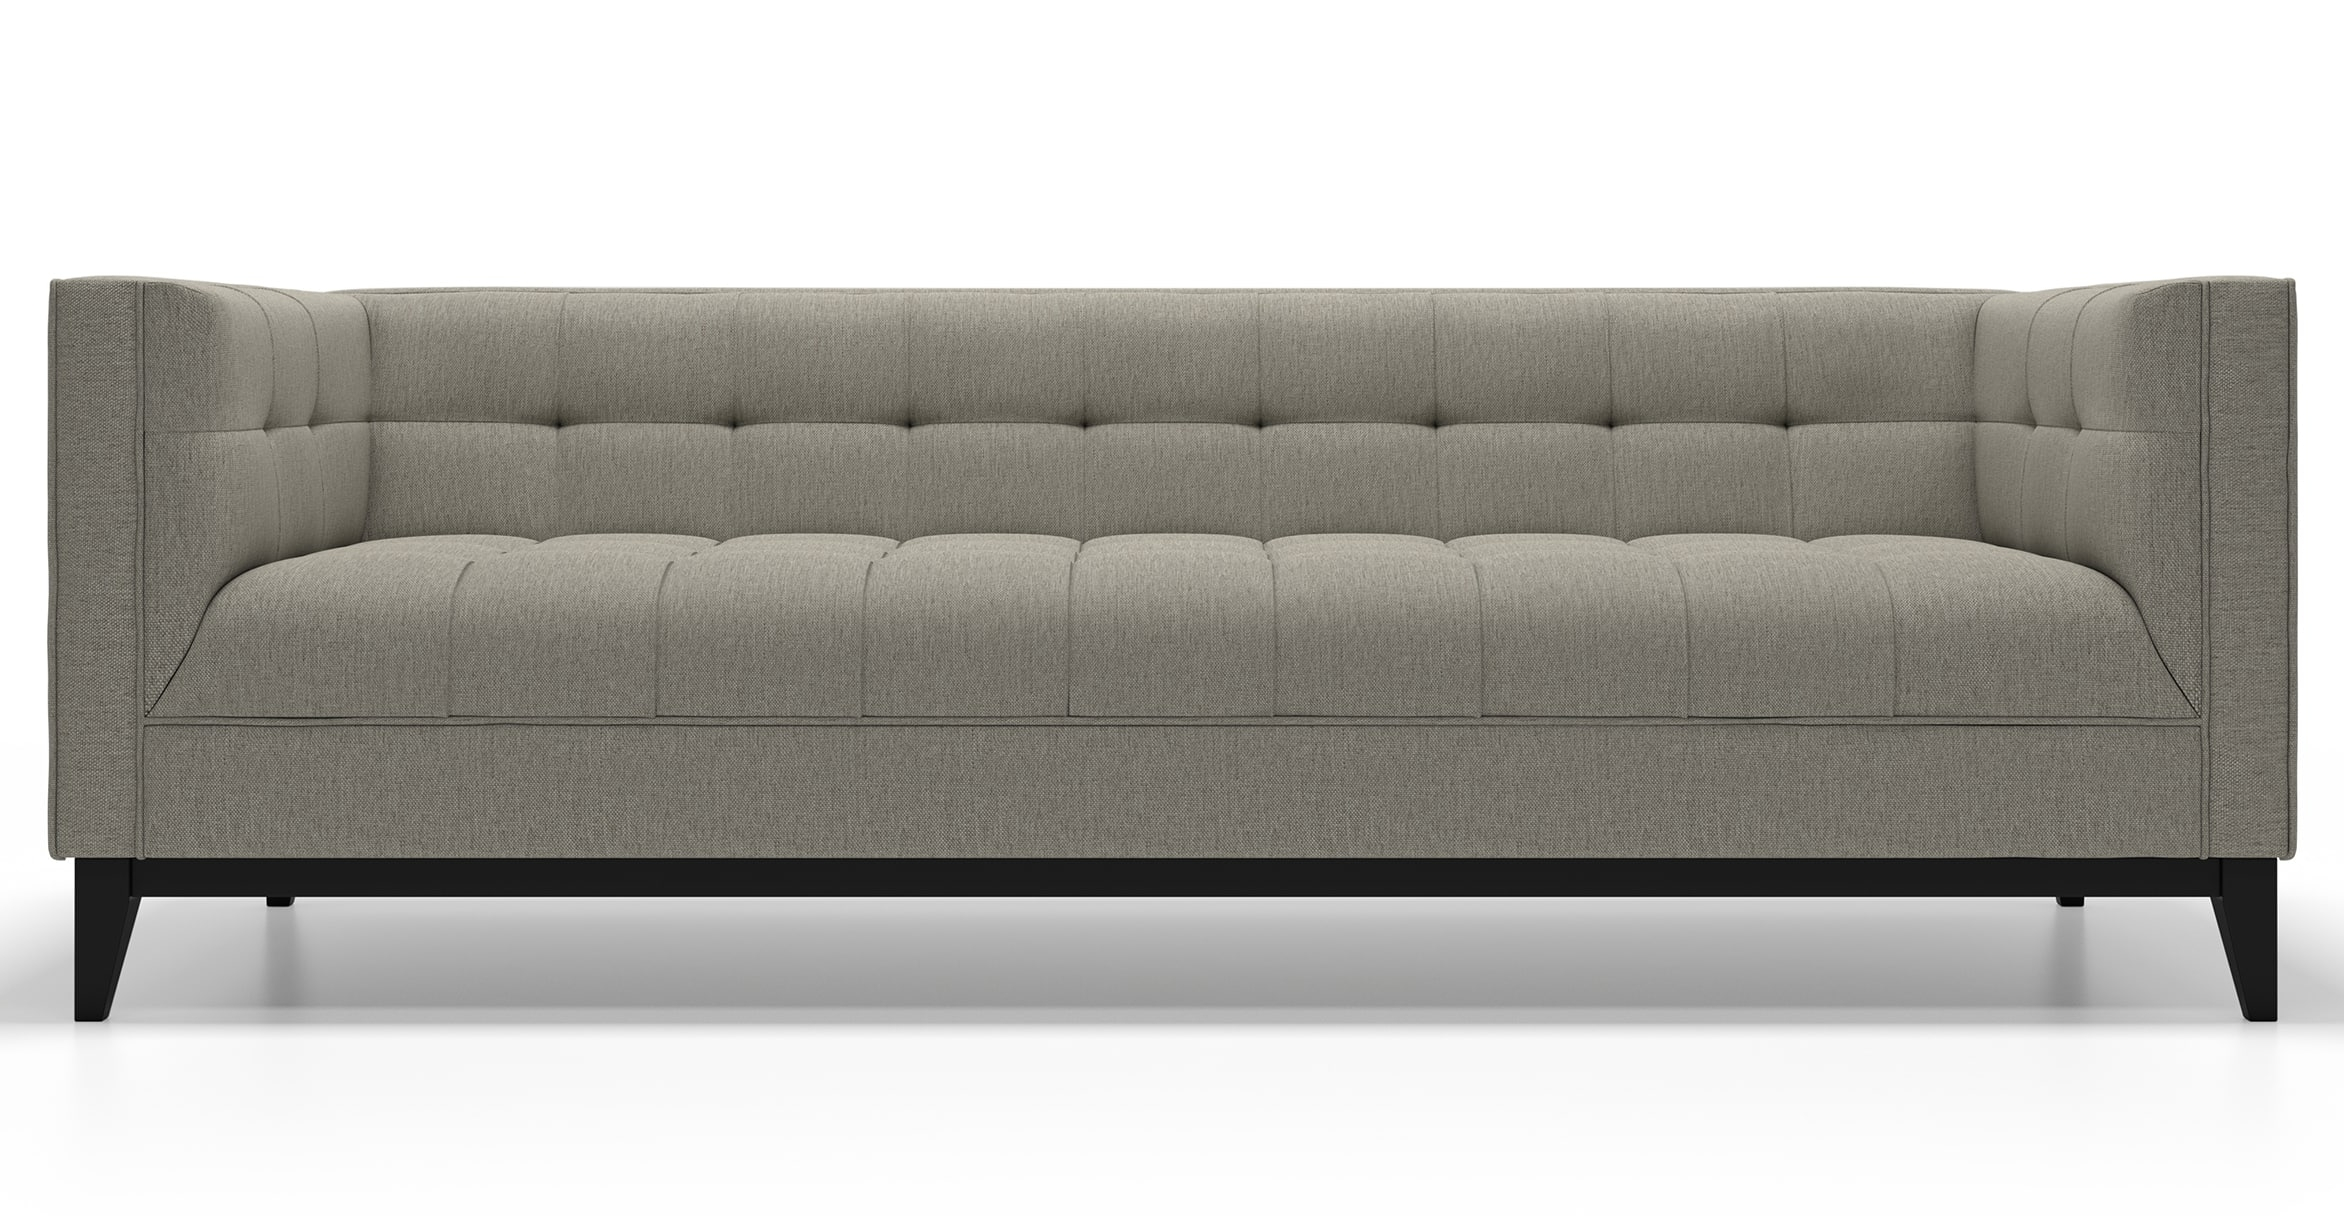 Modern Sofas Inside Widely Used Mid Century Modern Sofas, Alcott In Fabric (View 12 of 15)